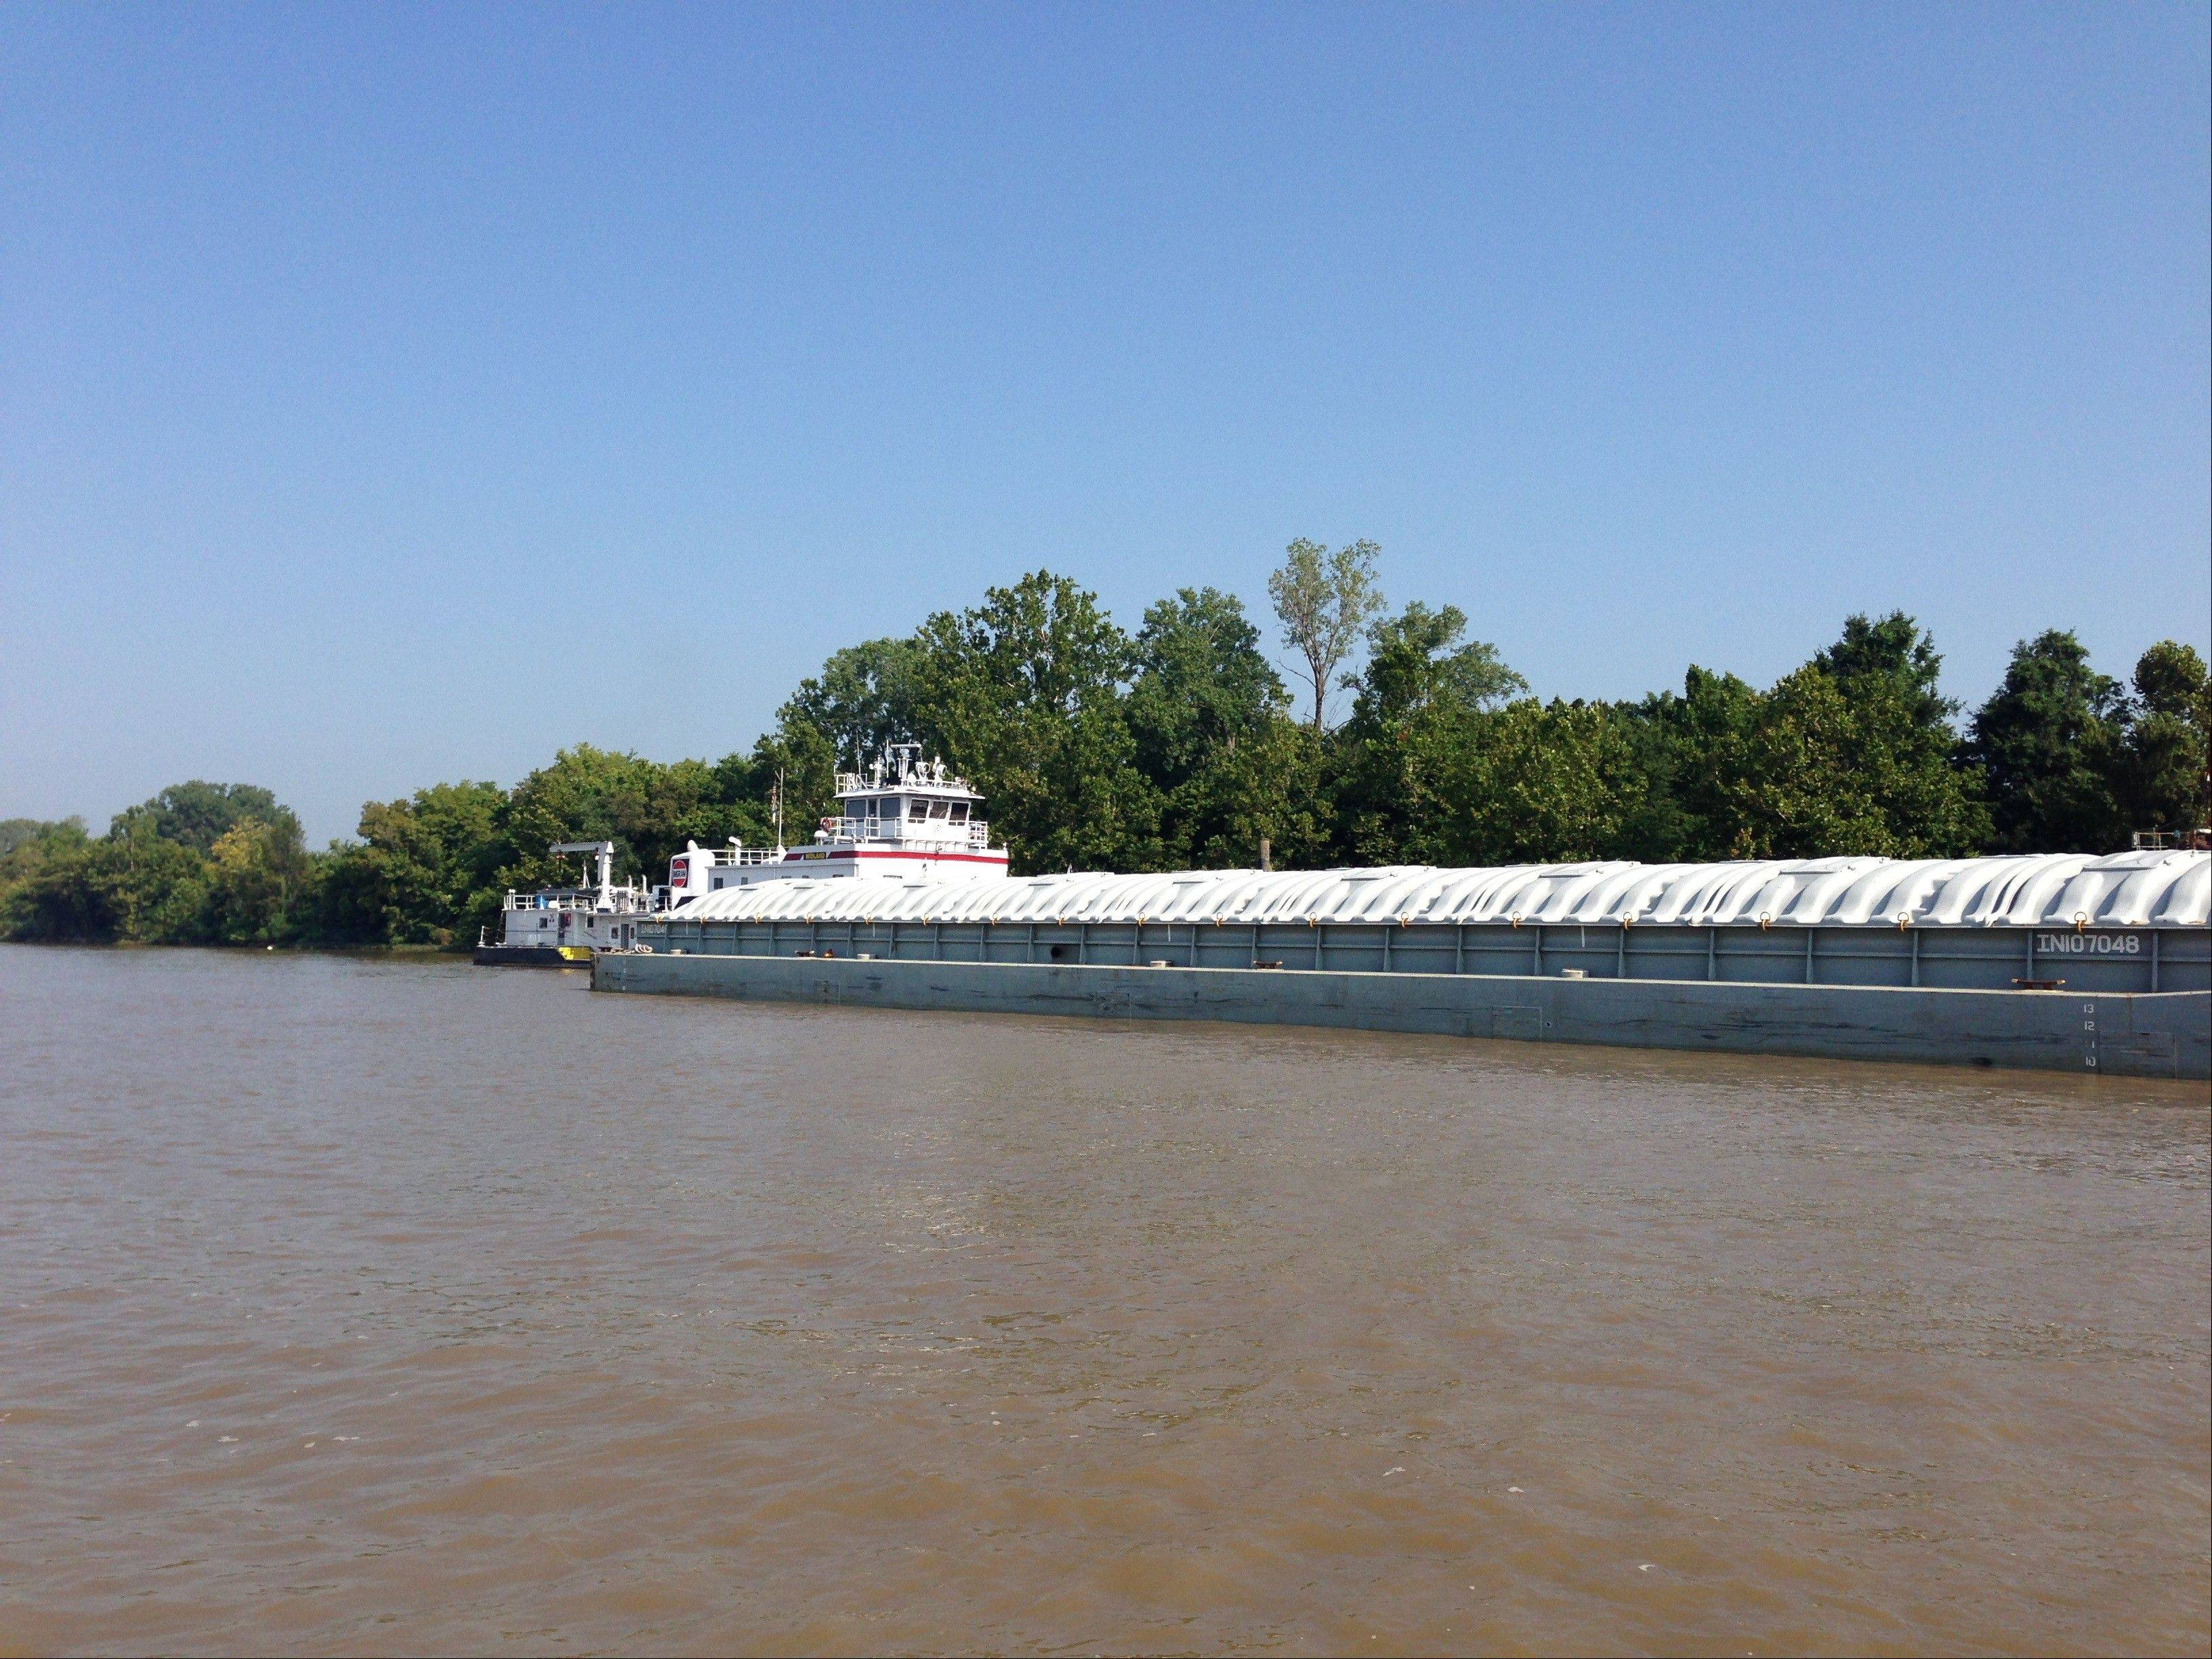 The MV Midland works Saturday on the Arkansas River, just below Little Rock, Ark.